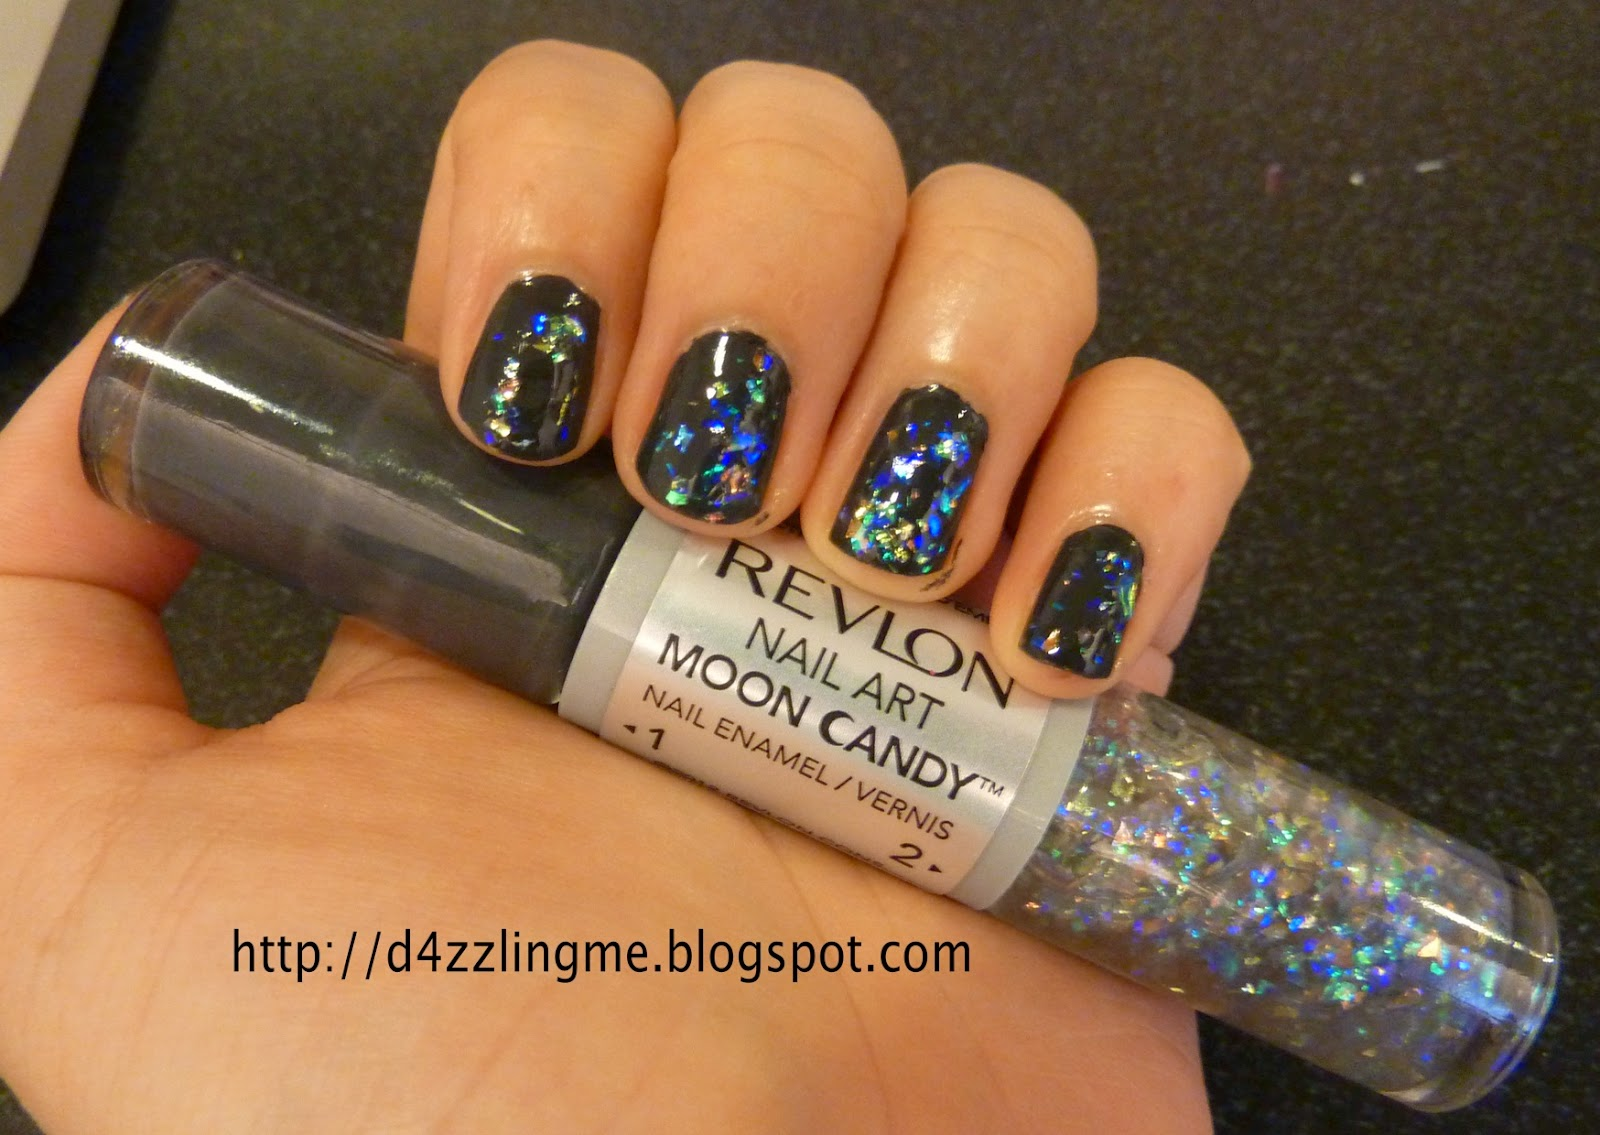 D4zzling Me Revlon Nail Art Moon Candy 220 Milky Way Swatch